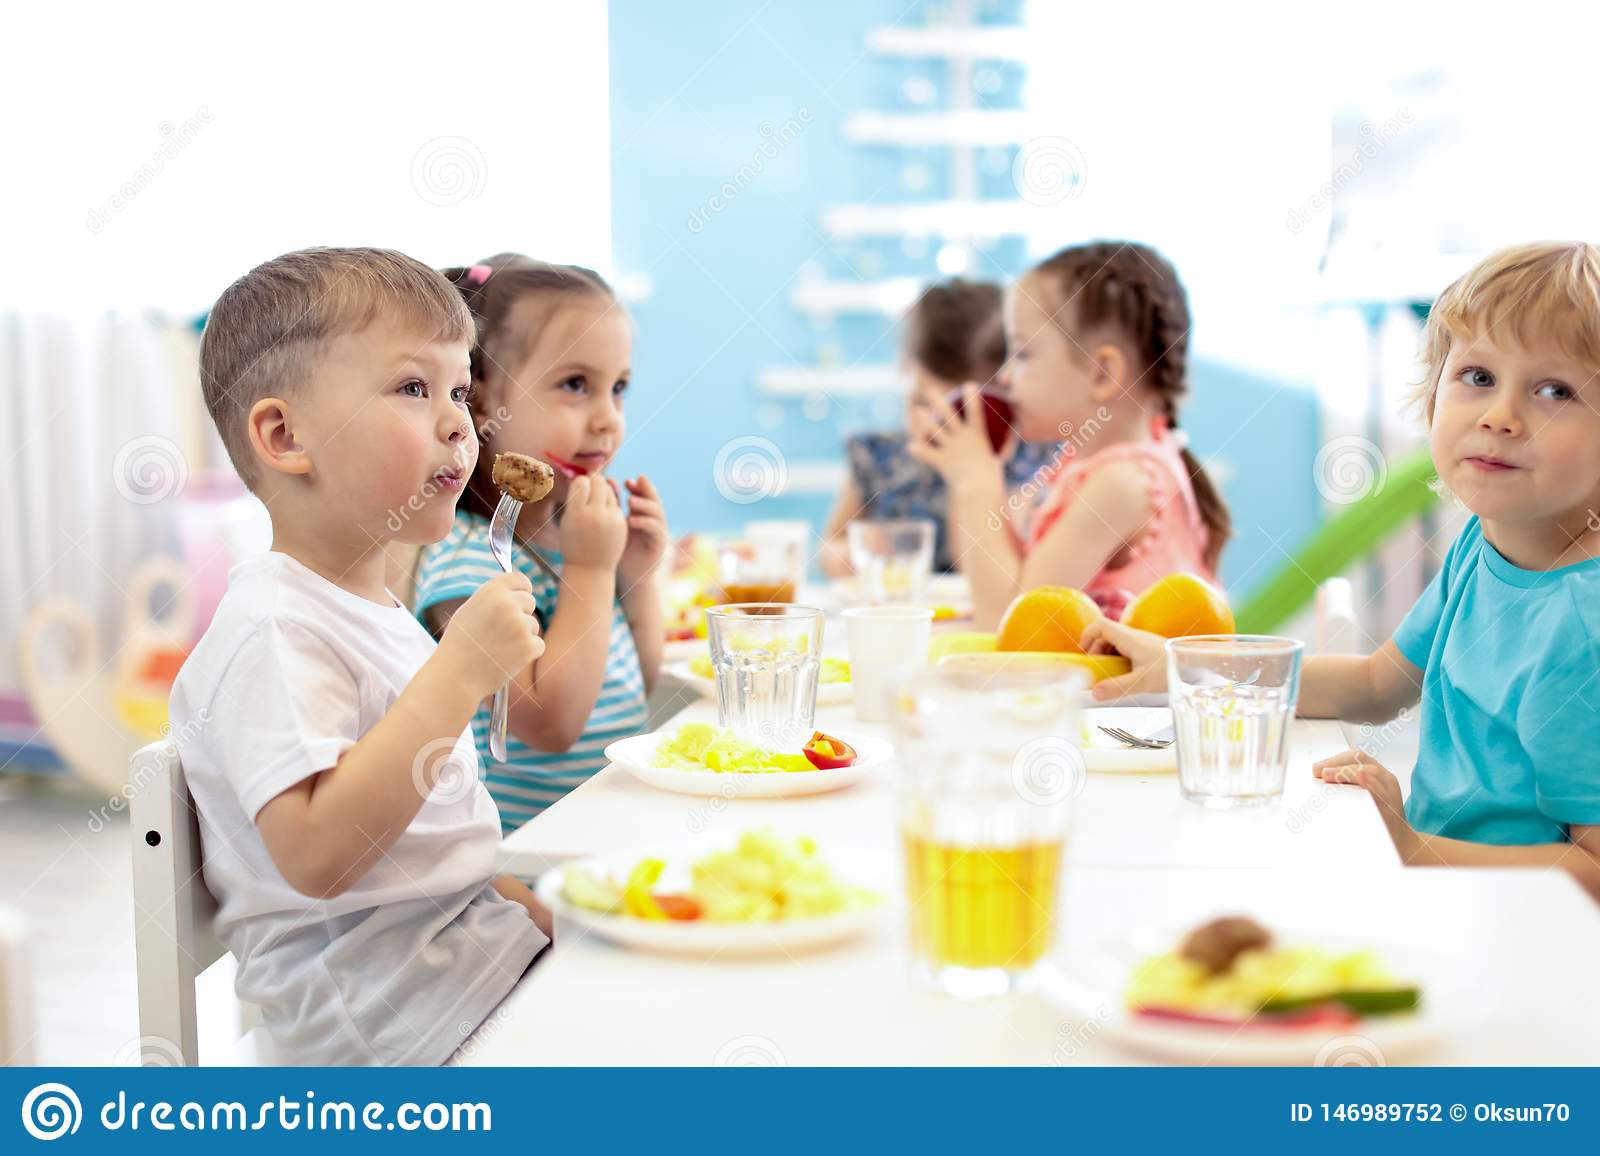 Kids have a lunch in daycare centre. Children eating healthy food in kindergarten